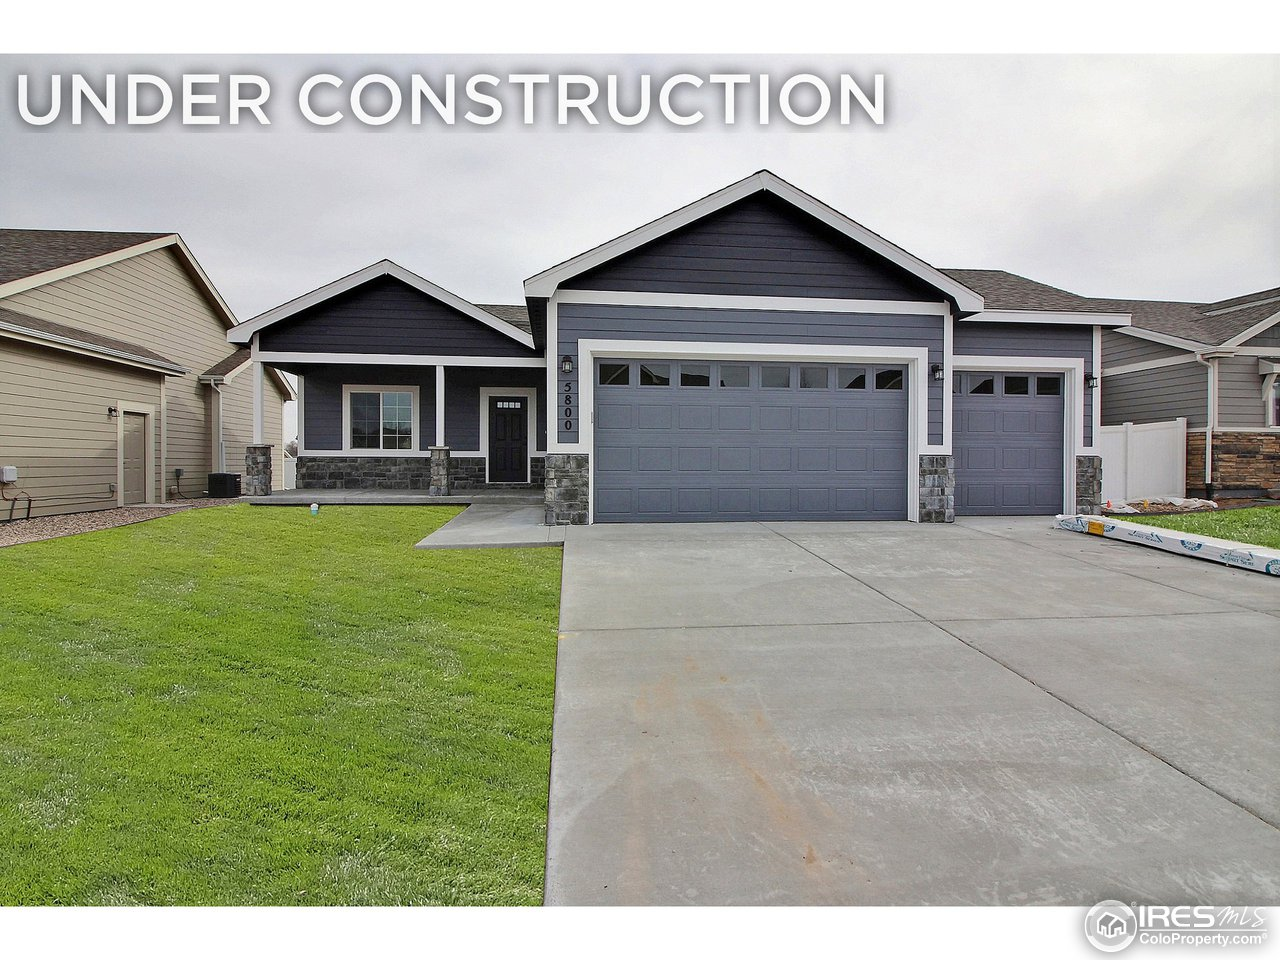 2315 73RD AVE PL, GREELEY, CO 80634